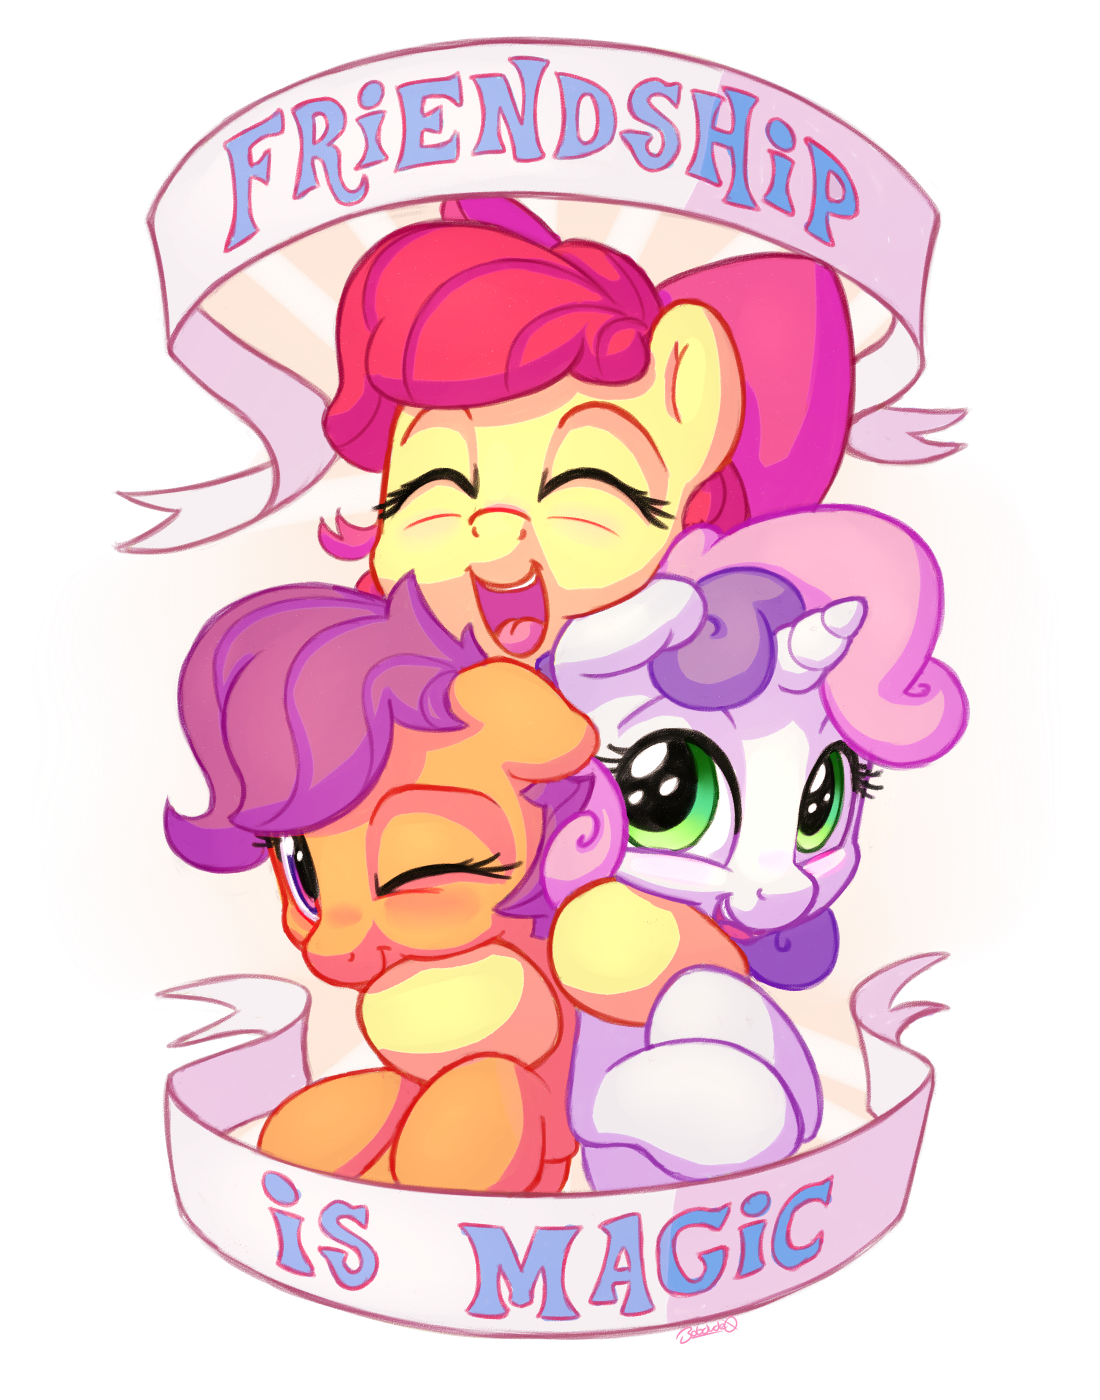 1457773 Adorabloom Apple Bloom Artist Bobdude0 Cute Cutealoo Cutie Mark Crusaders Diasweetes My Little Pony Games My Little Pony Drawing Little Pony Today i'm going to show you how to style my little pony's scootaloo's hair into her signature look. pinterest